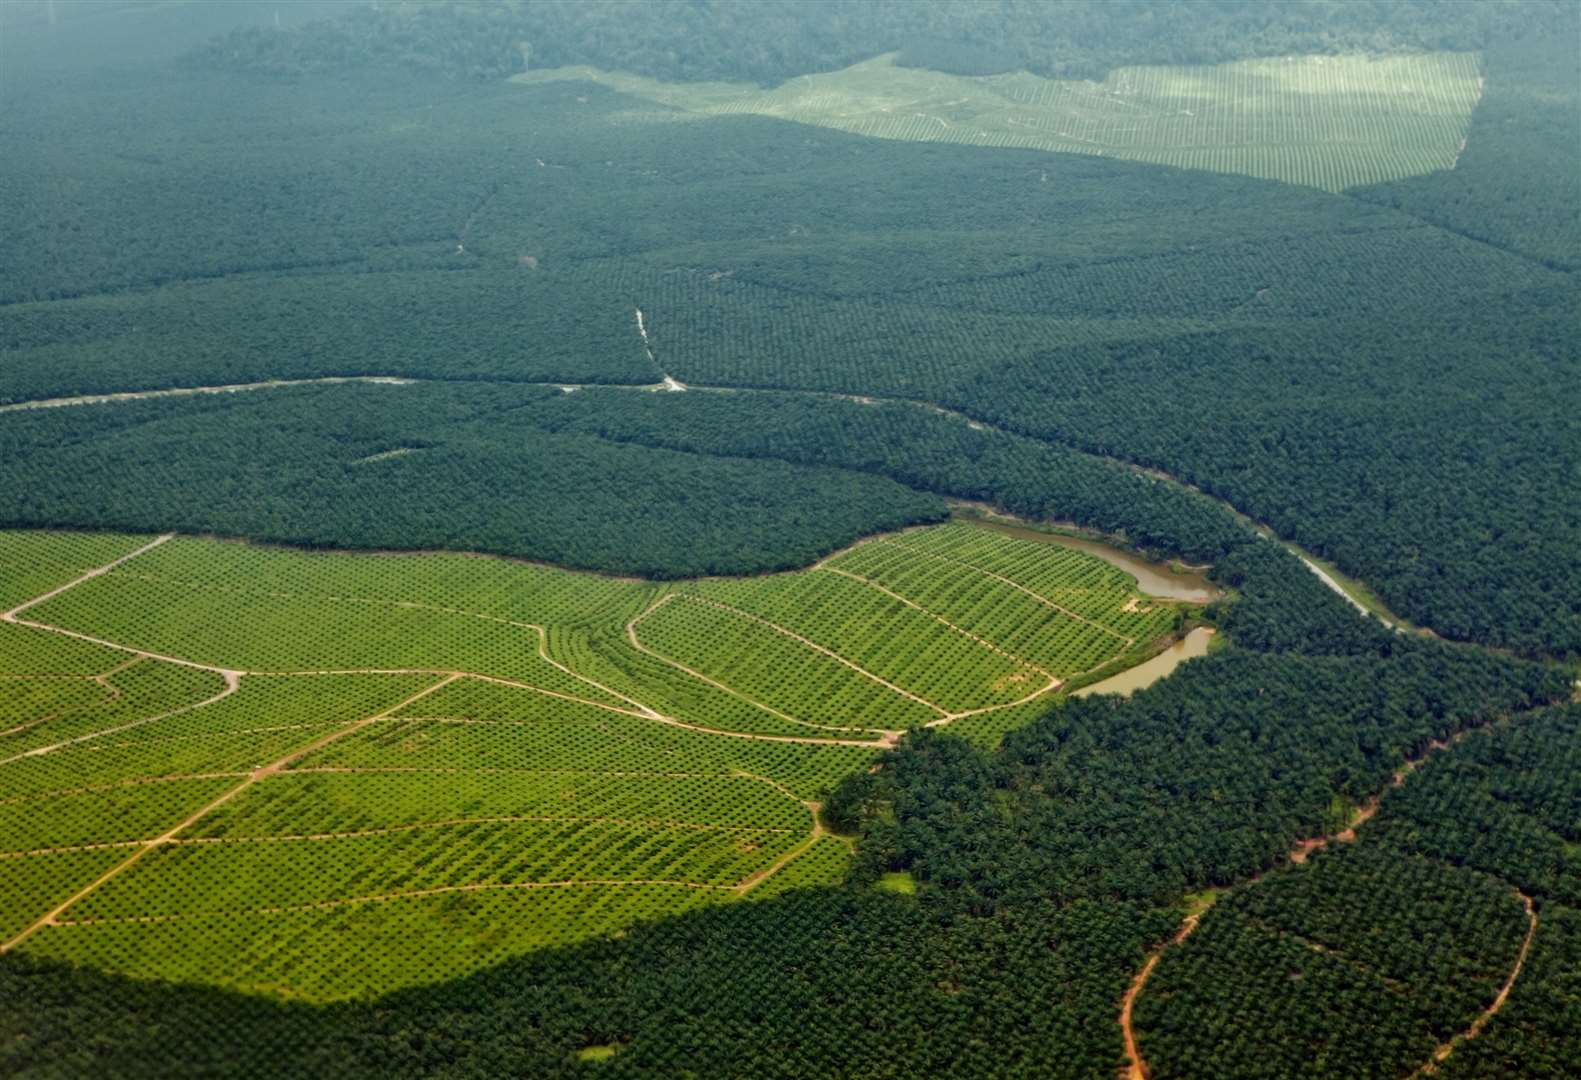 Oil palm plantations in Sabah. Recently planted oil palms can be seen in the bright green grassy areas and a tiny bit of natural rainforest still struggles for survival farther away.